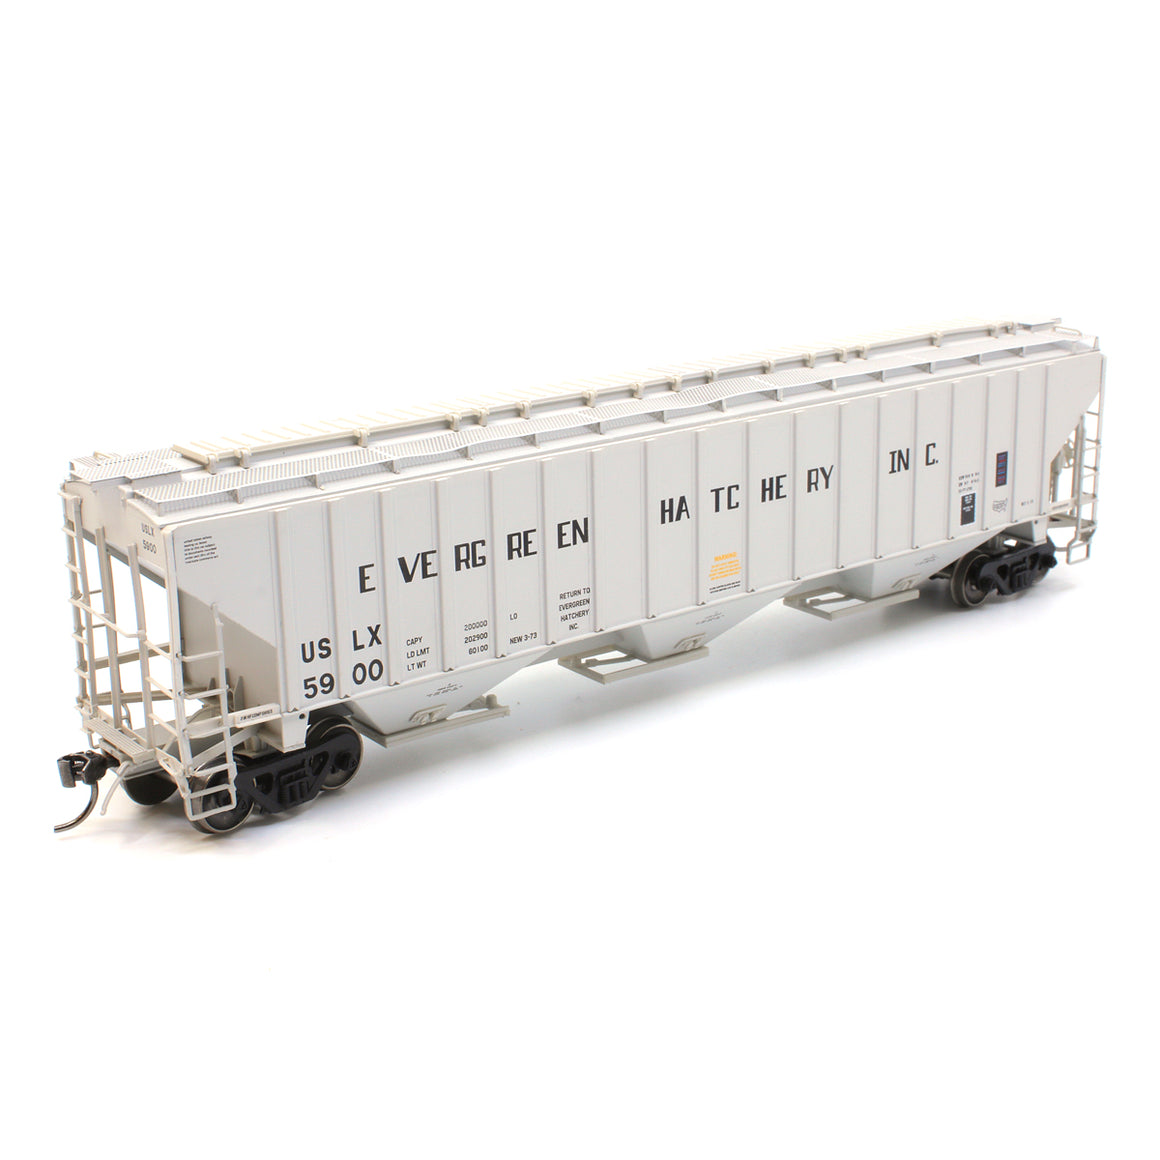 HO Scale: 4750 3-Bay Rib-Sided Covered Hopper - Evergreen Fish Hatchery Inc.